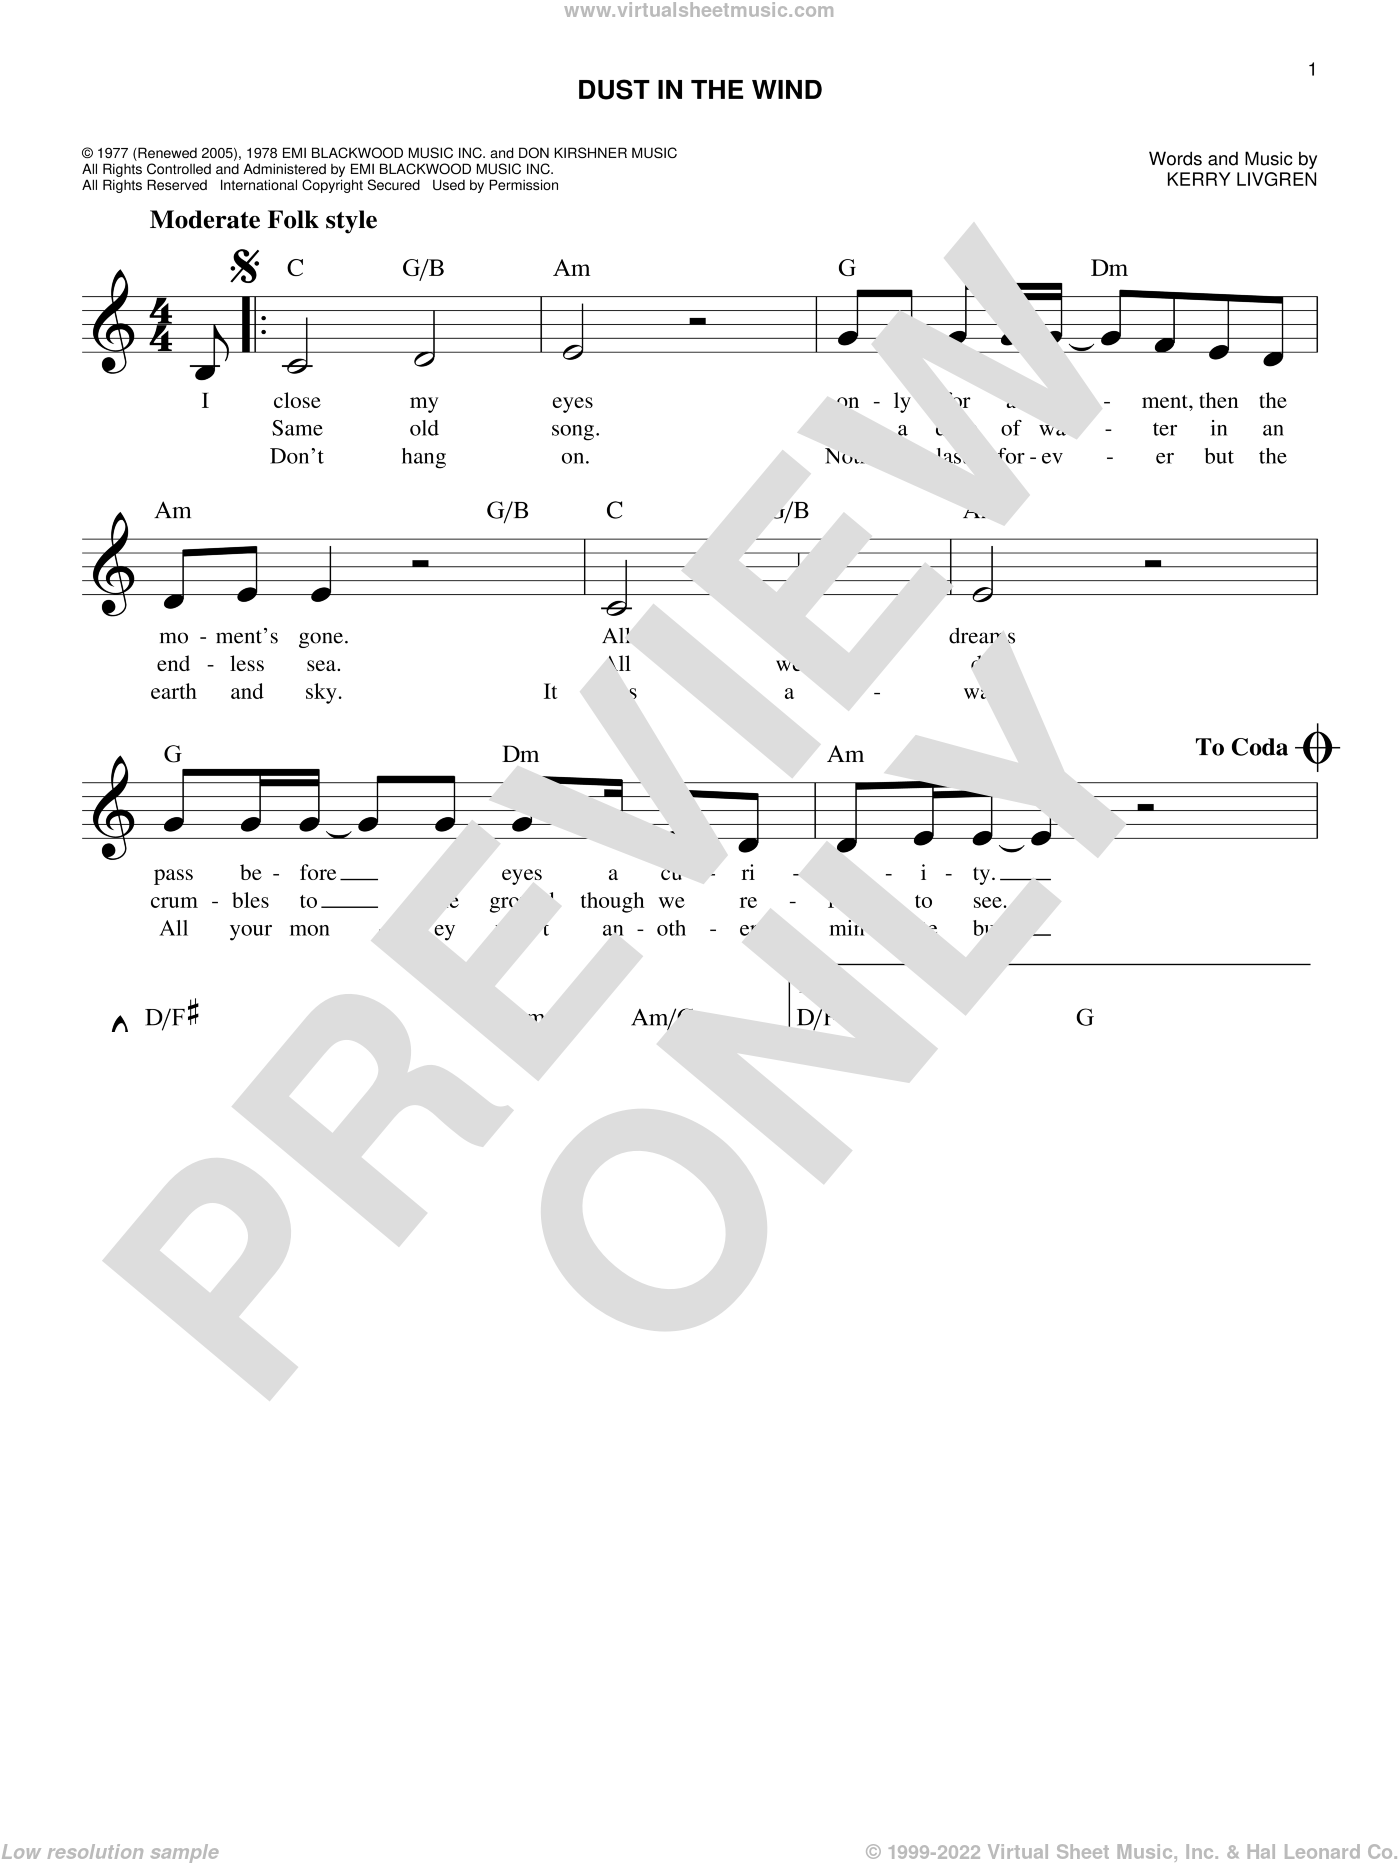 Dust In The Wind sheet music for voice and other instruments (fake book) by Kansas and Kerry Livgren, intermediate skill level